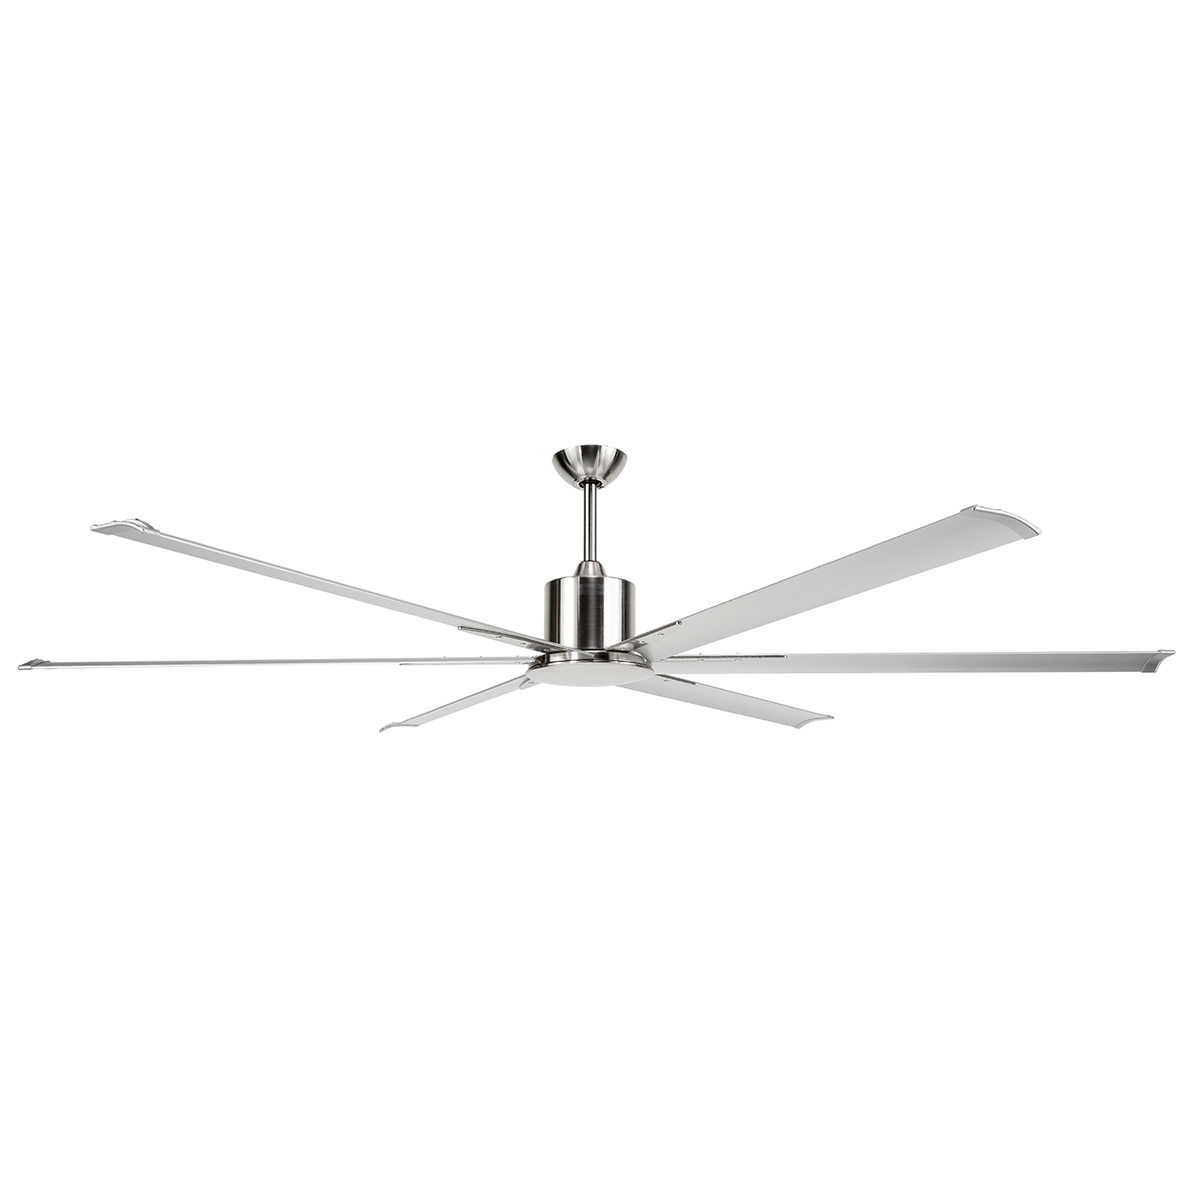 Large ceiling fans big fans for large rooms lumera living 33 maelstrom silver main aloadofball Image collections